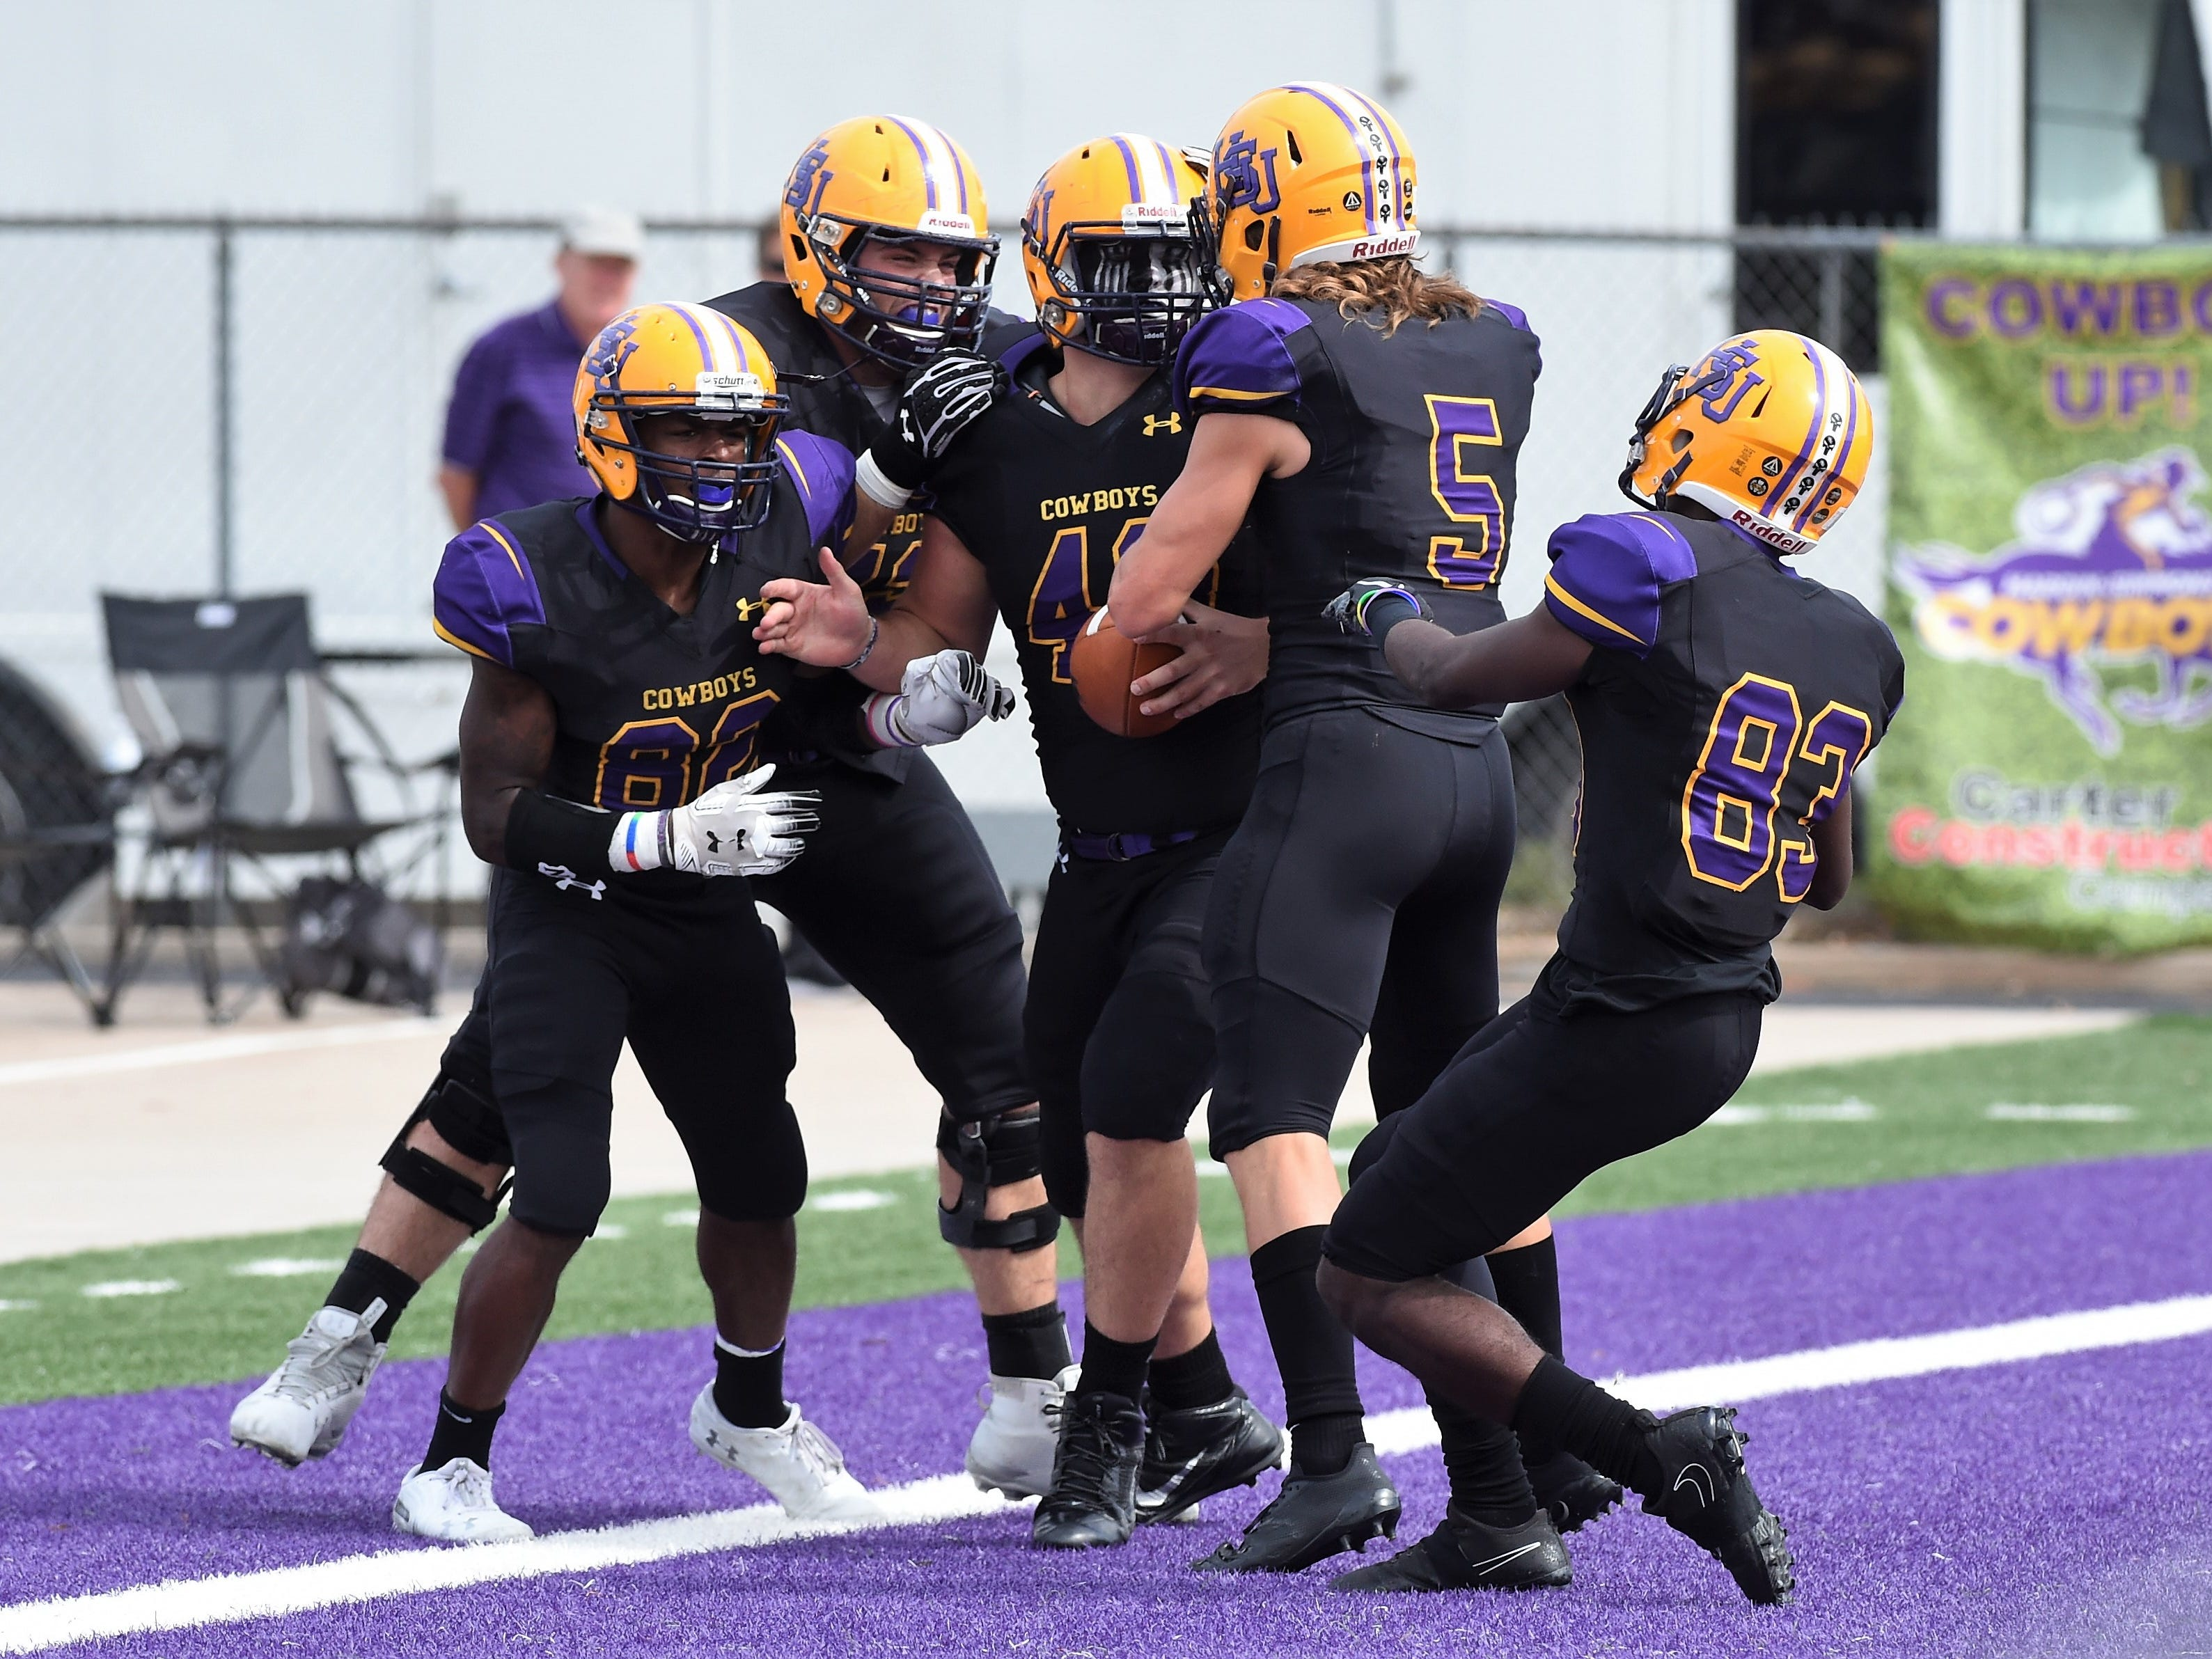 Hardin-Simmons tight end Hayden Day (48) is congratulated in the end zone after scoring against Texas Lutheran at Shelton Stadium on Saturday, Oct. 20, 2018.